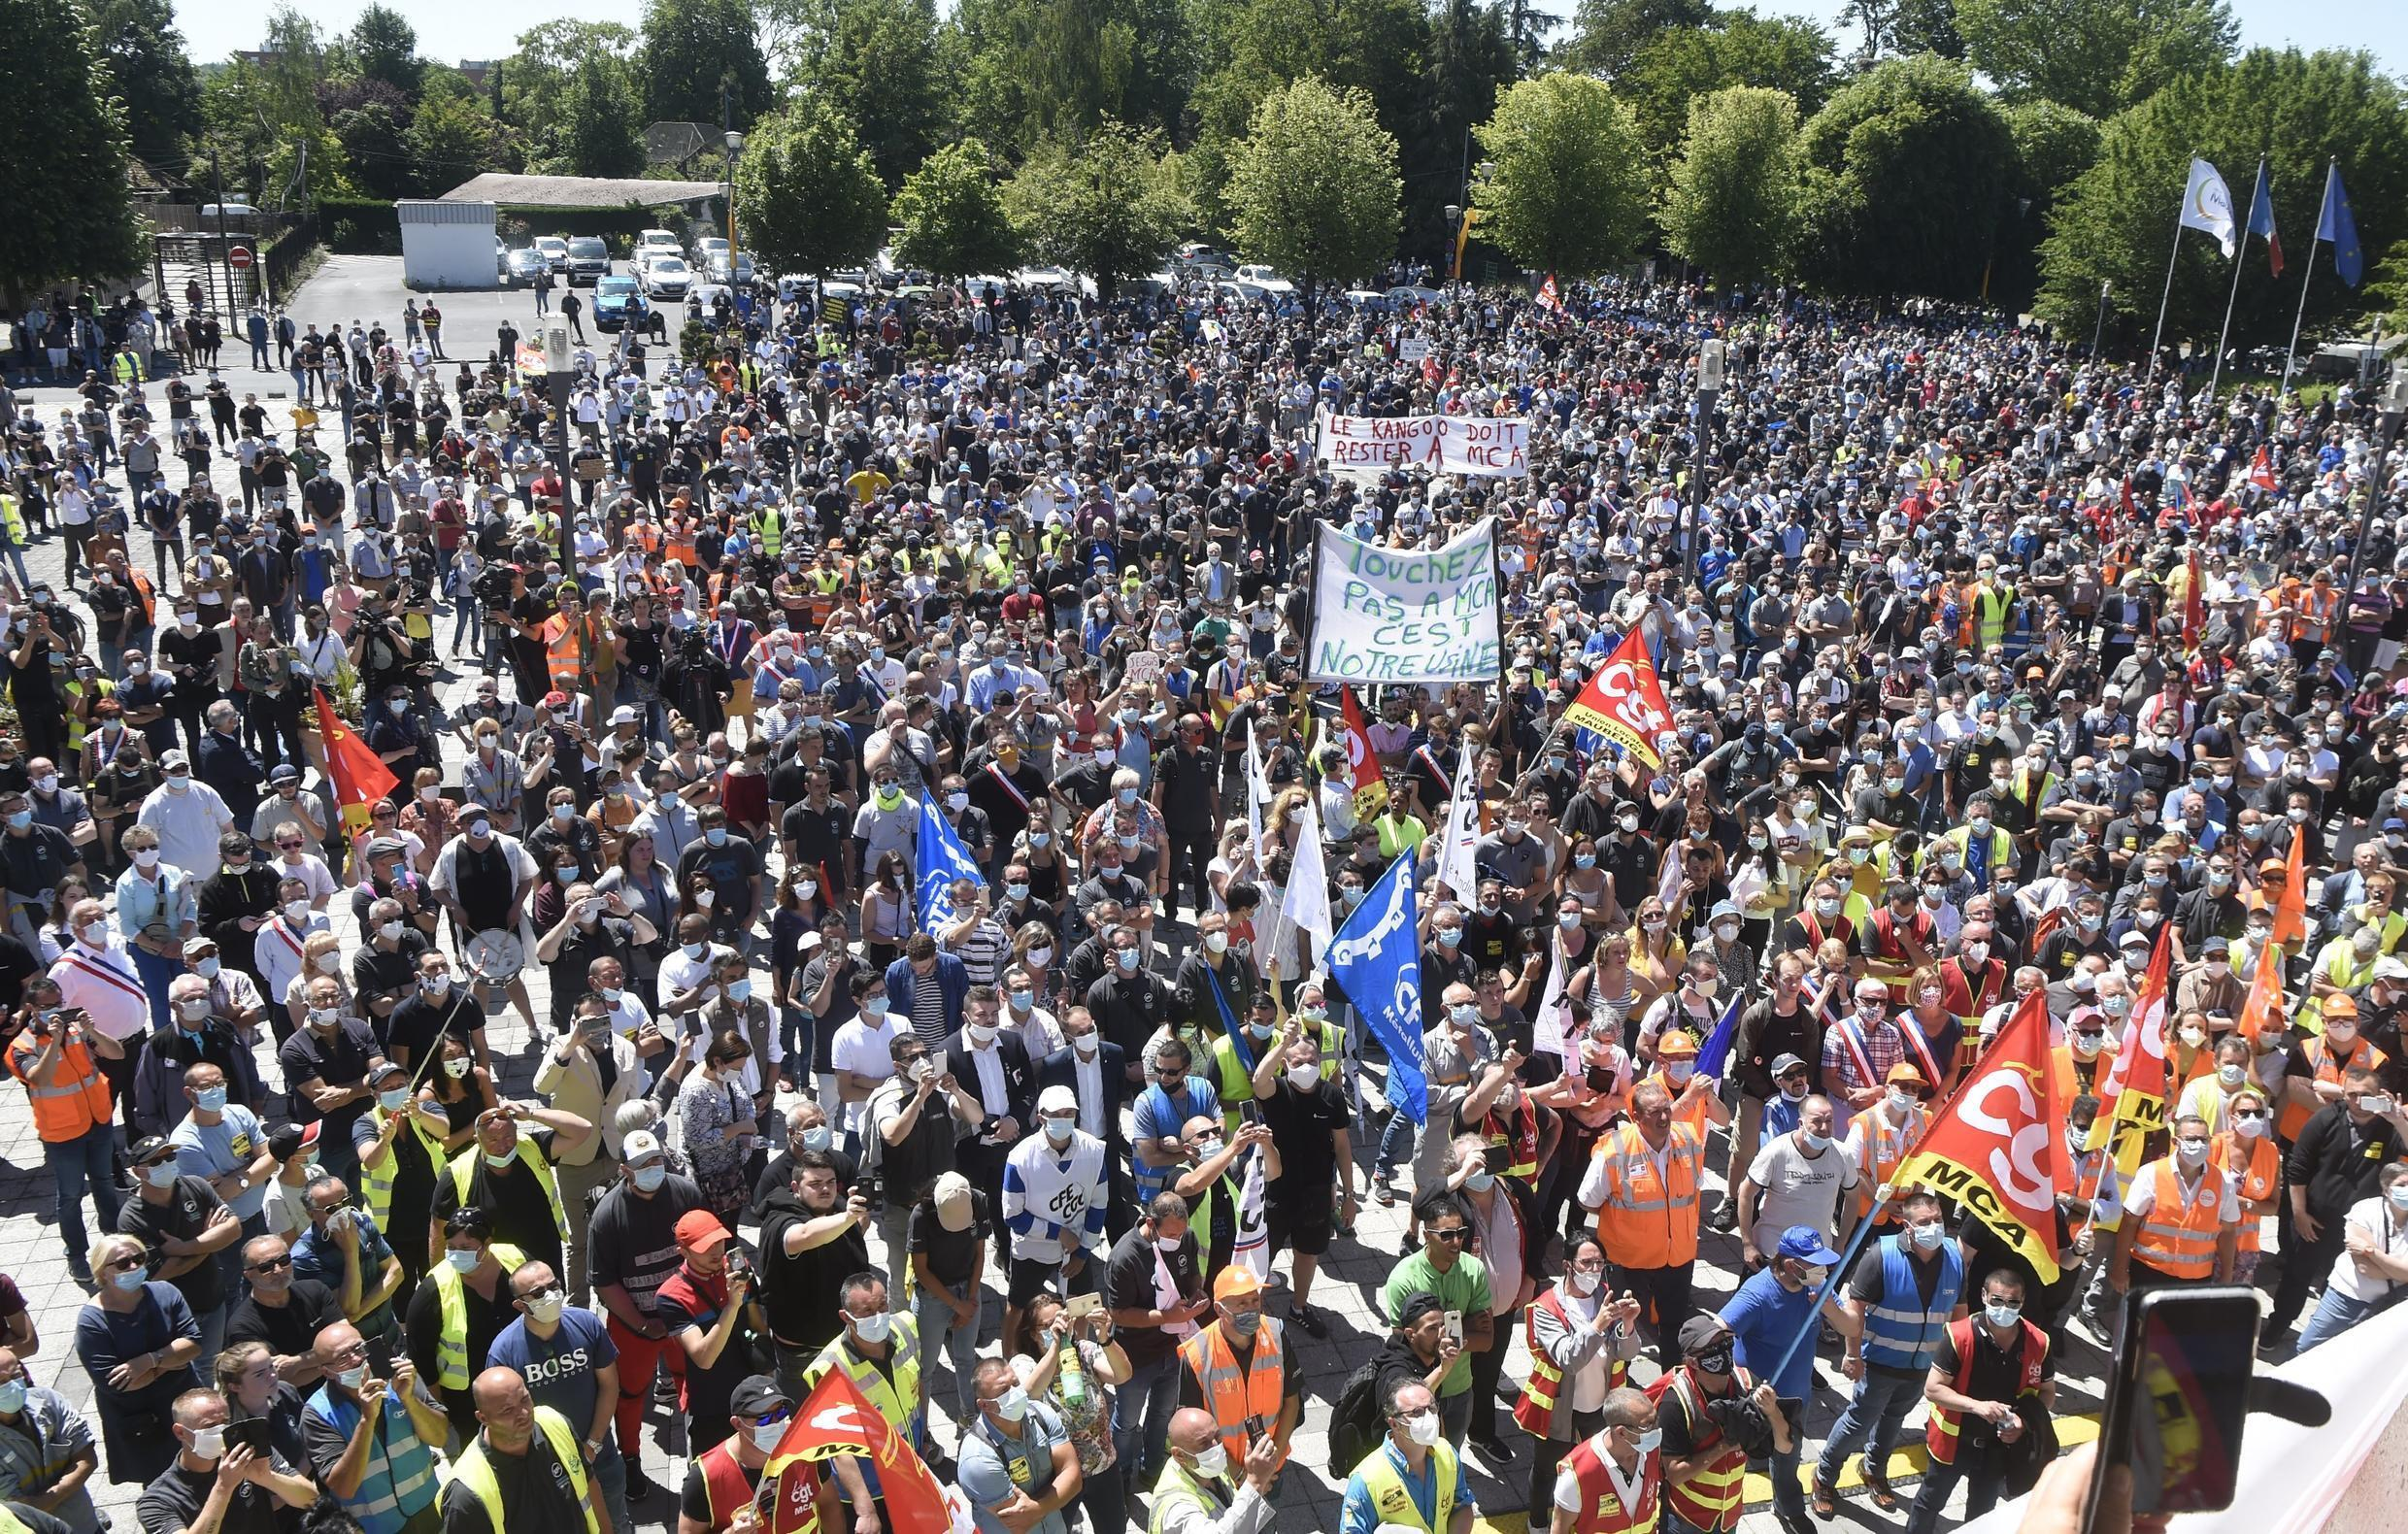 Unions said 8,000 people took part in the protest over the cuts designed to help Renault steer out of a cash crunch exacerbated by the coronavirus pandemic, 29 May 2020